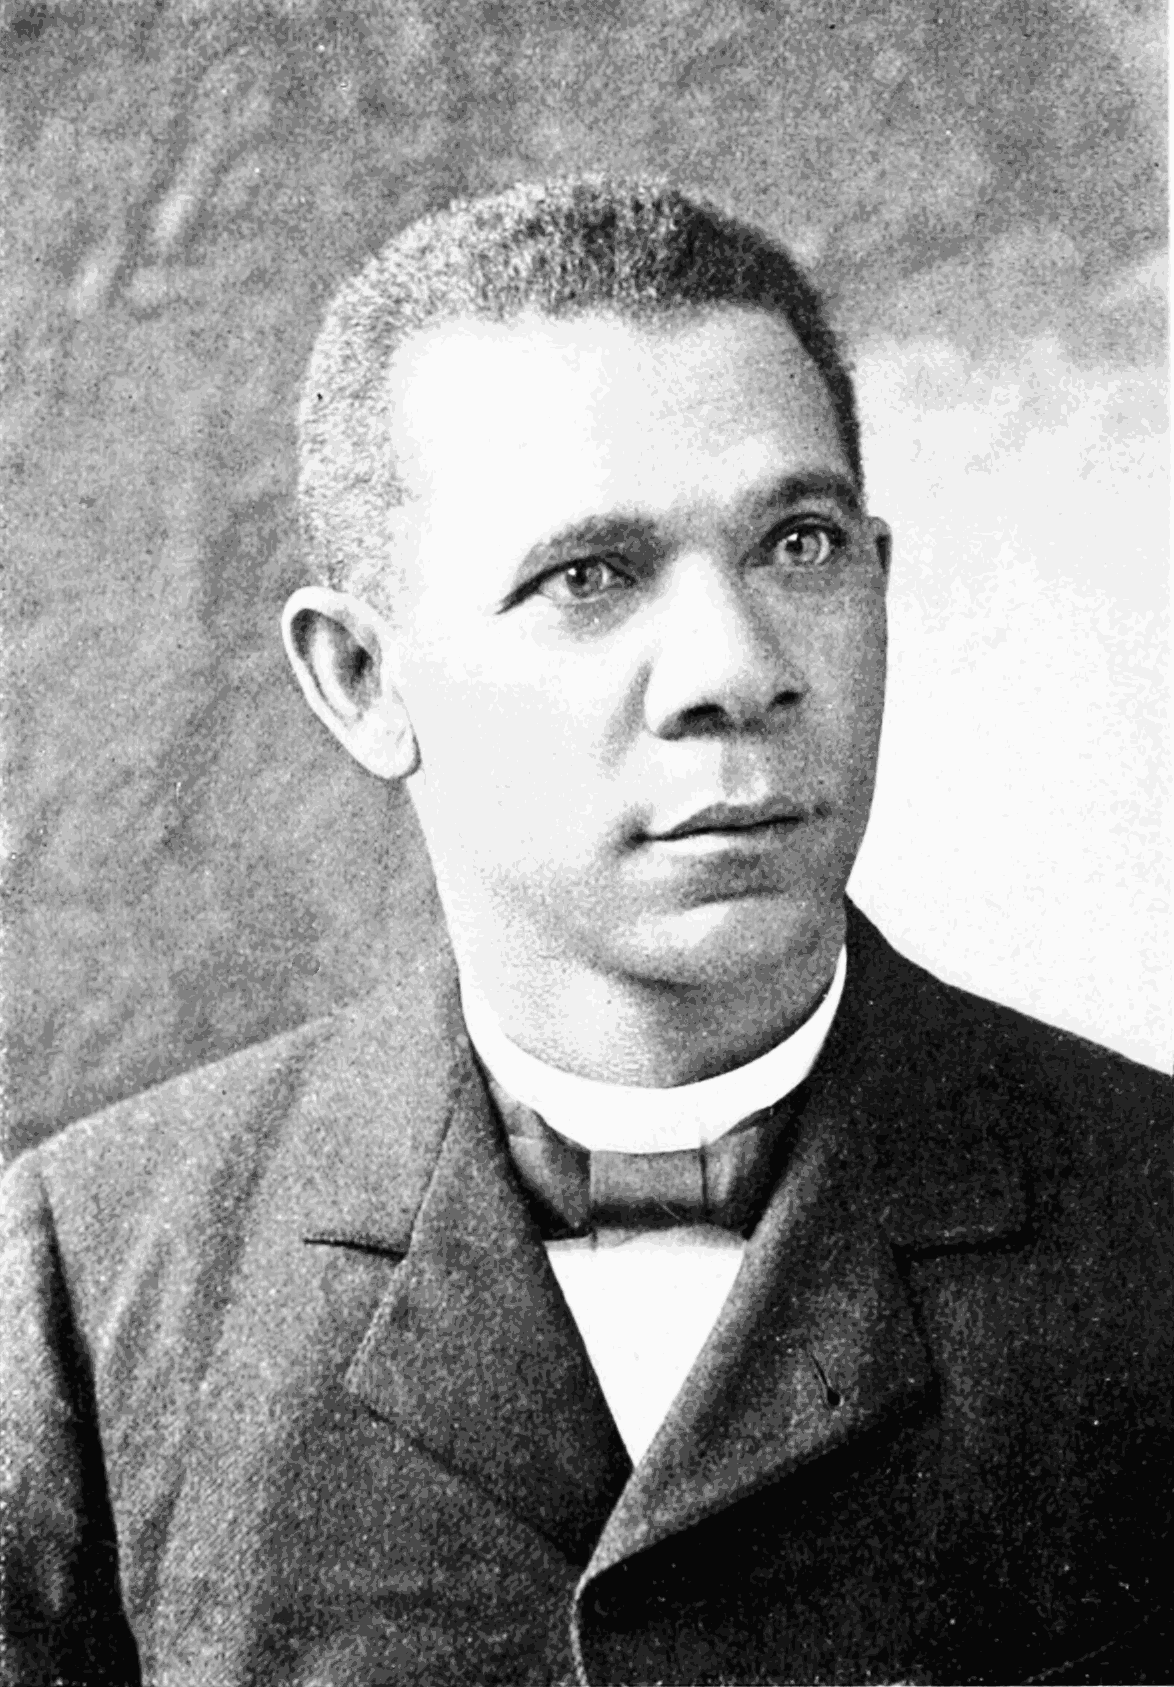 essay by booker t washington Lena west red 9-23-12 booker t washington and web dubois essay booker t washington and webdubois had contrasting views on how to attain r.